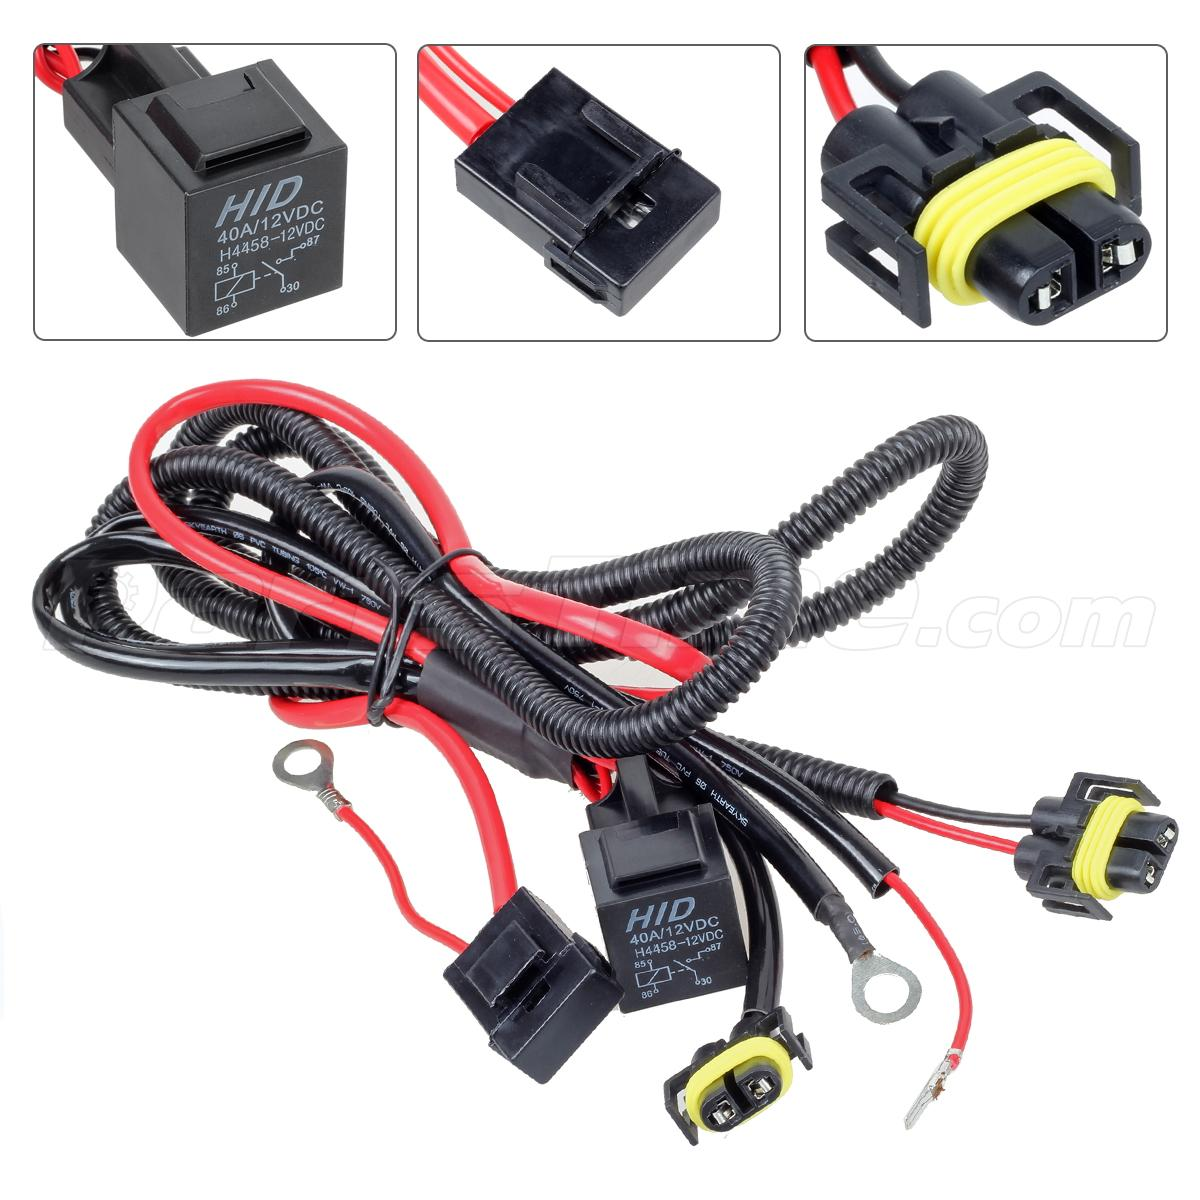 h11 880 881 headlight fog light drl relay wiring harness. Black Bedroom Furniture Sets. Home Design Ideas